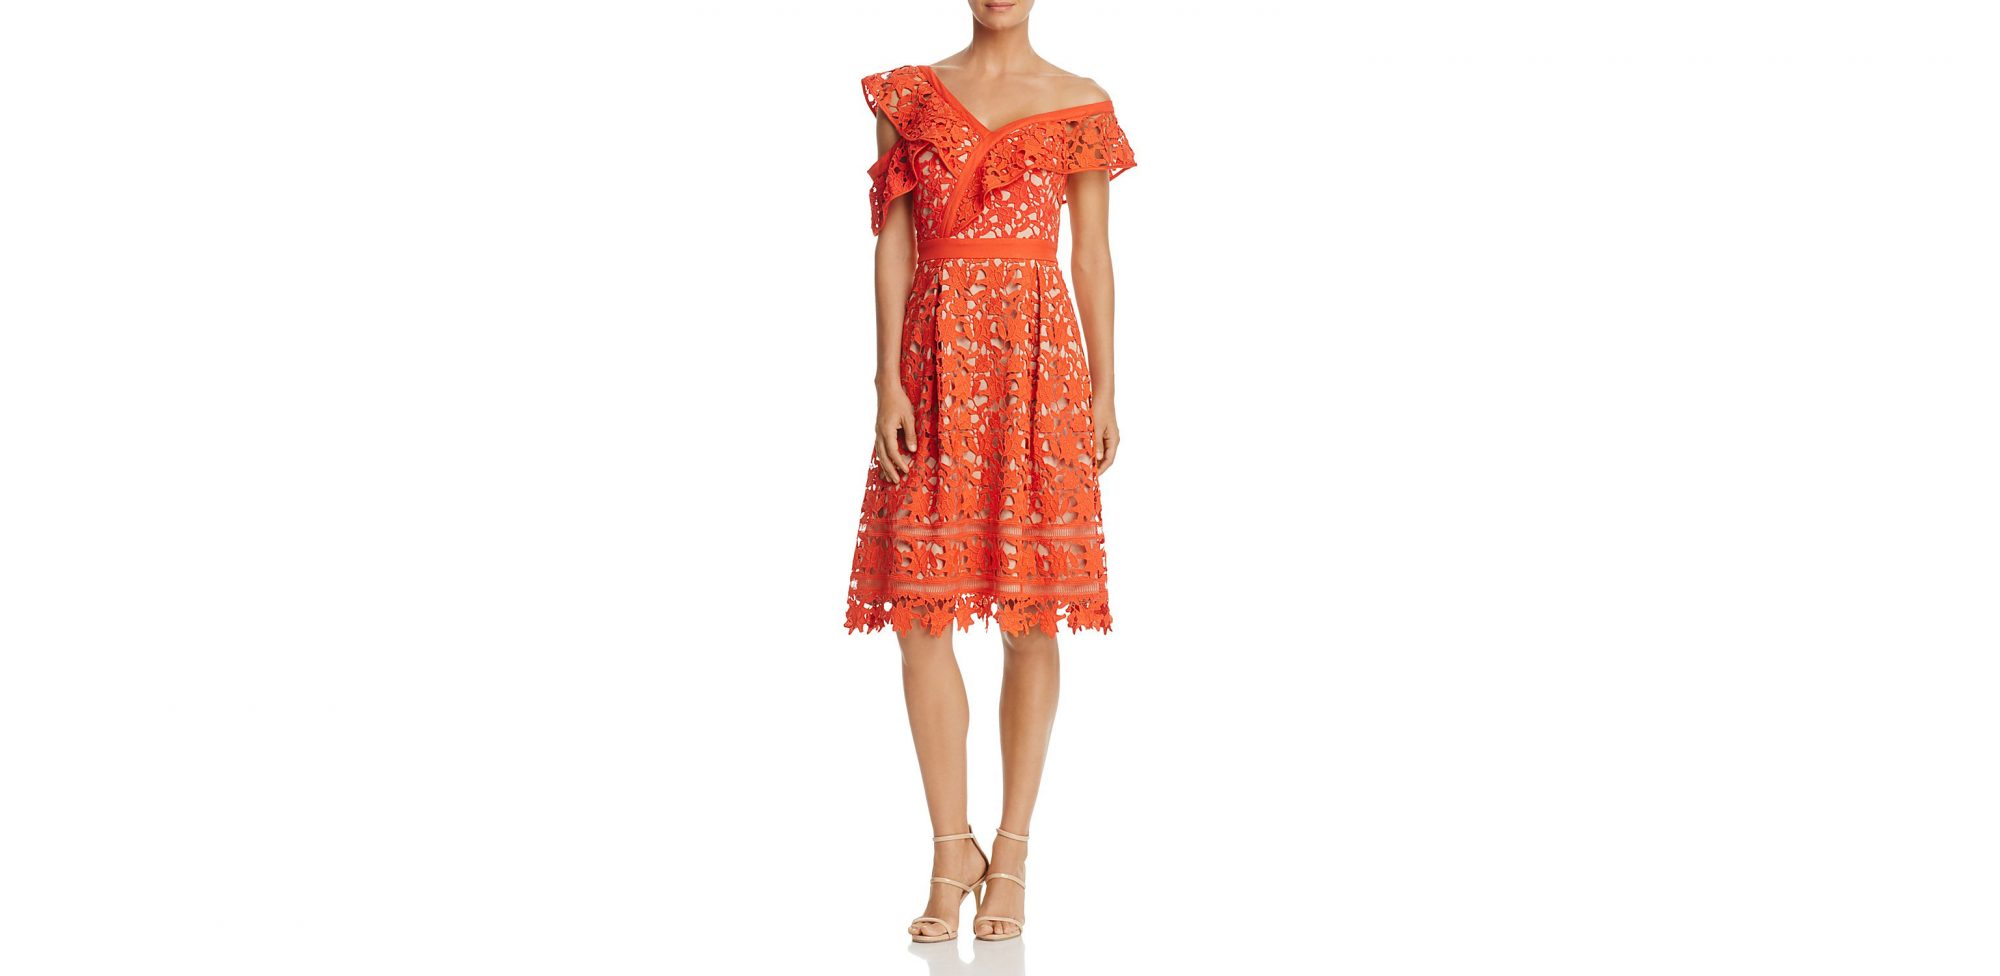 cold-shoulder-lace-orange-dress